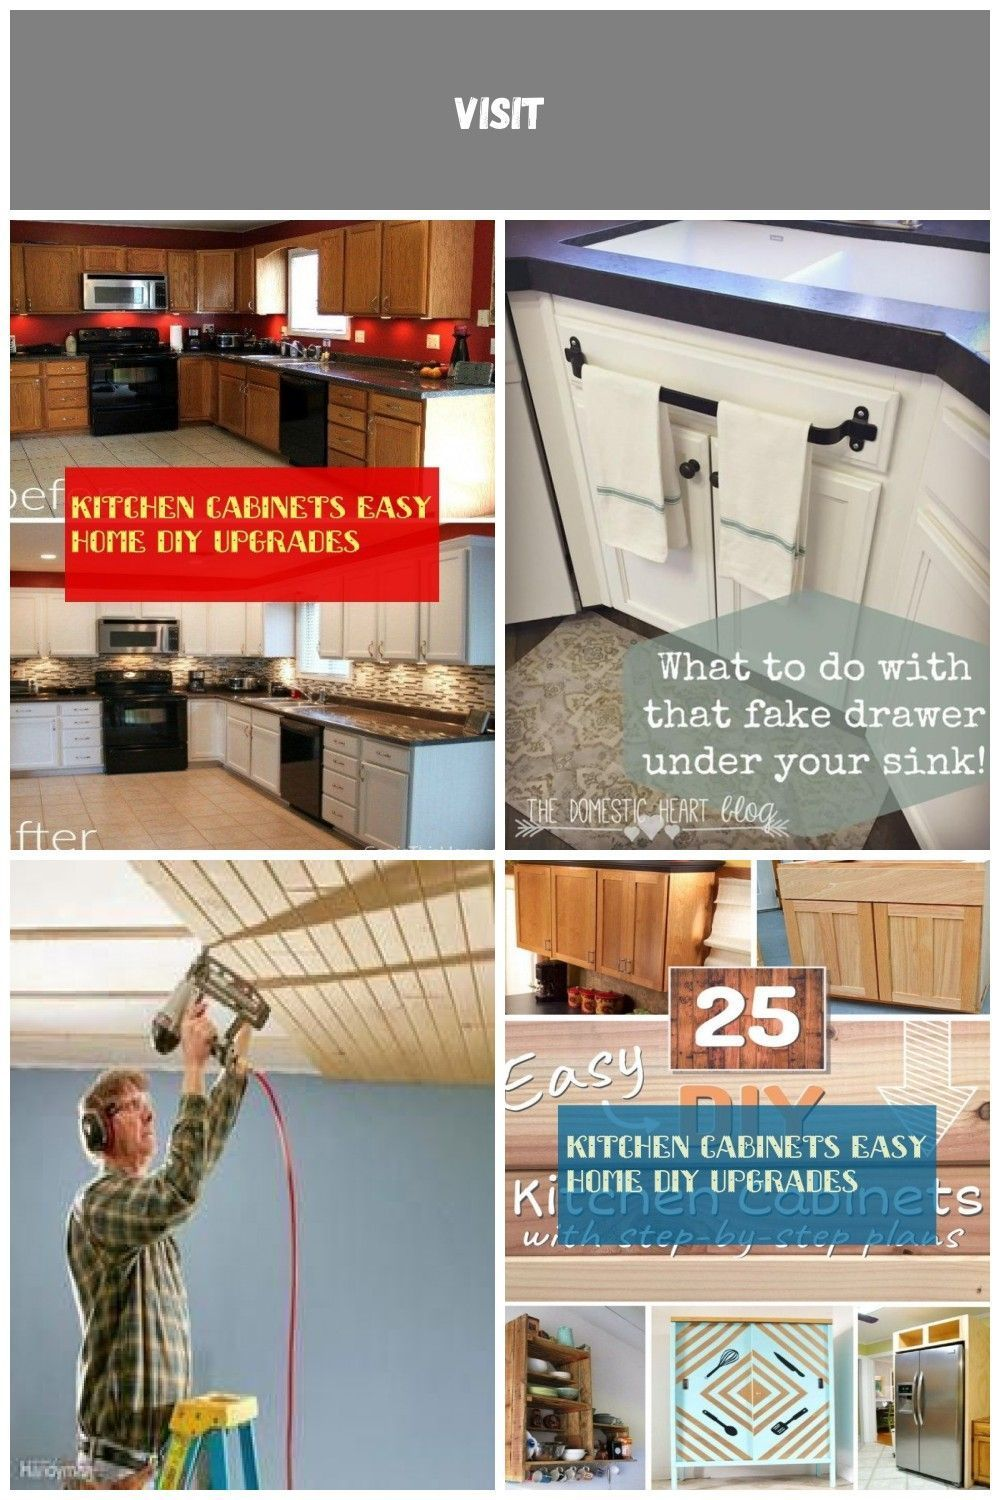 kitchen cabinets easy home diy upgrades  kitchen cabinets